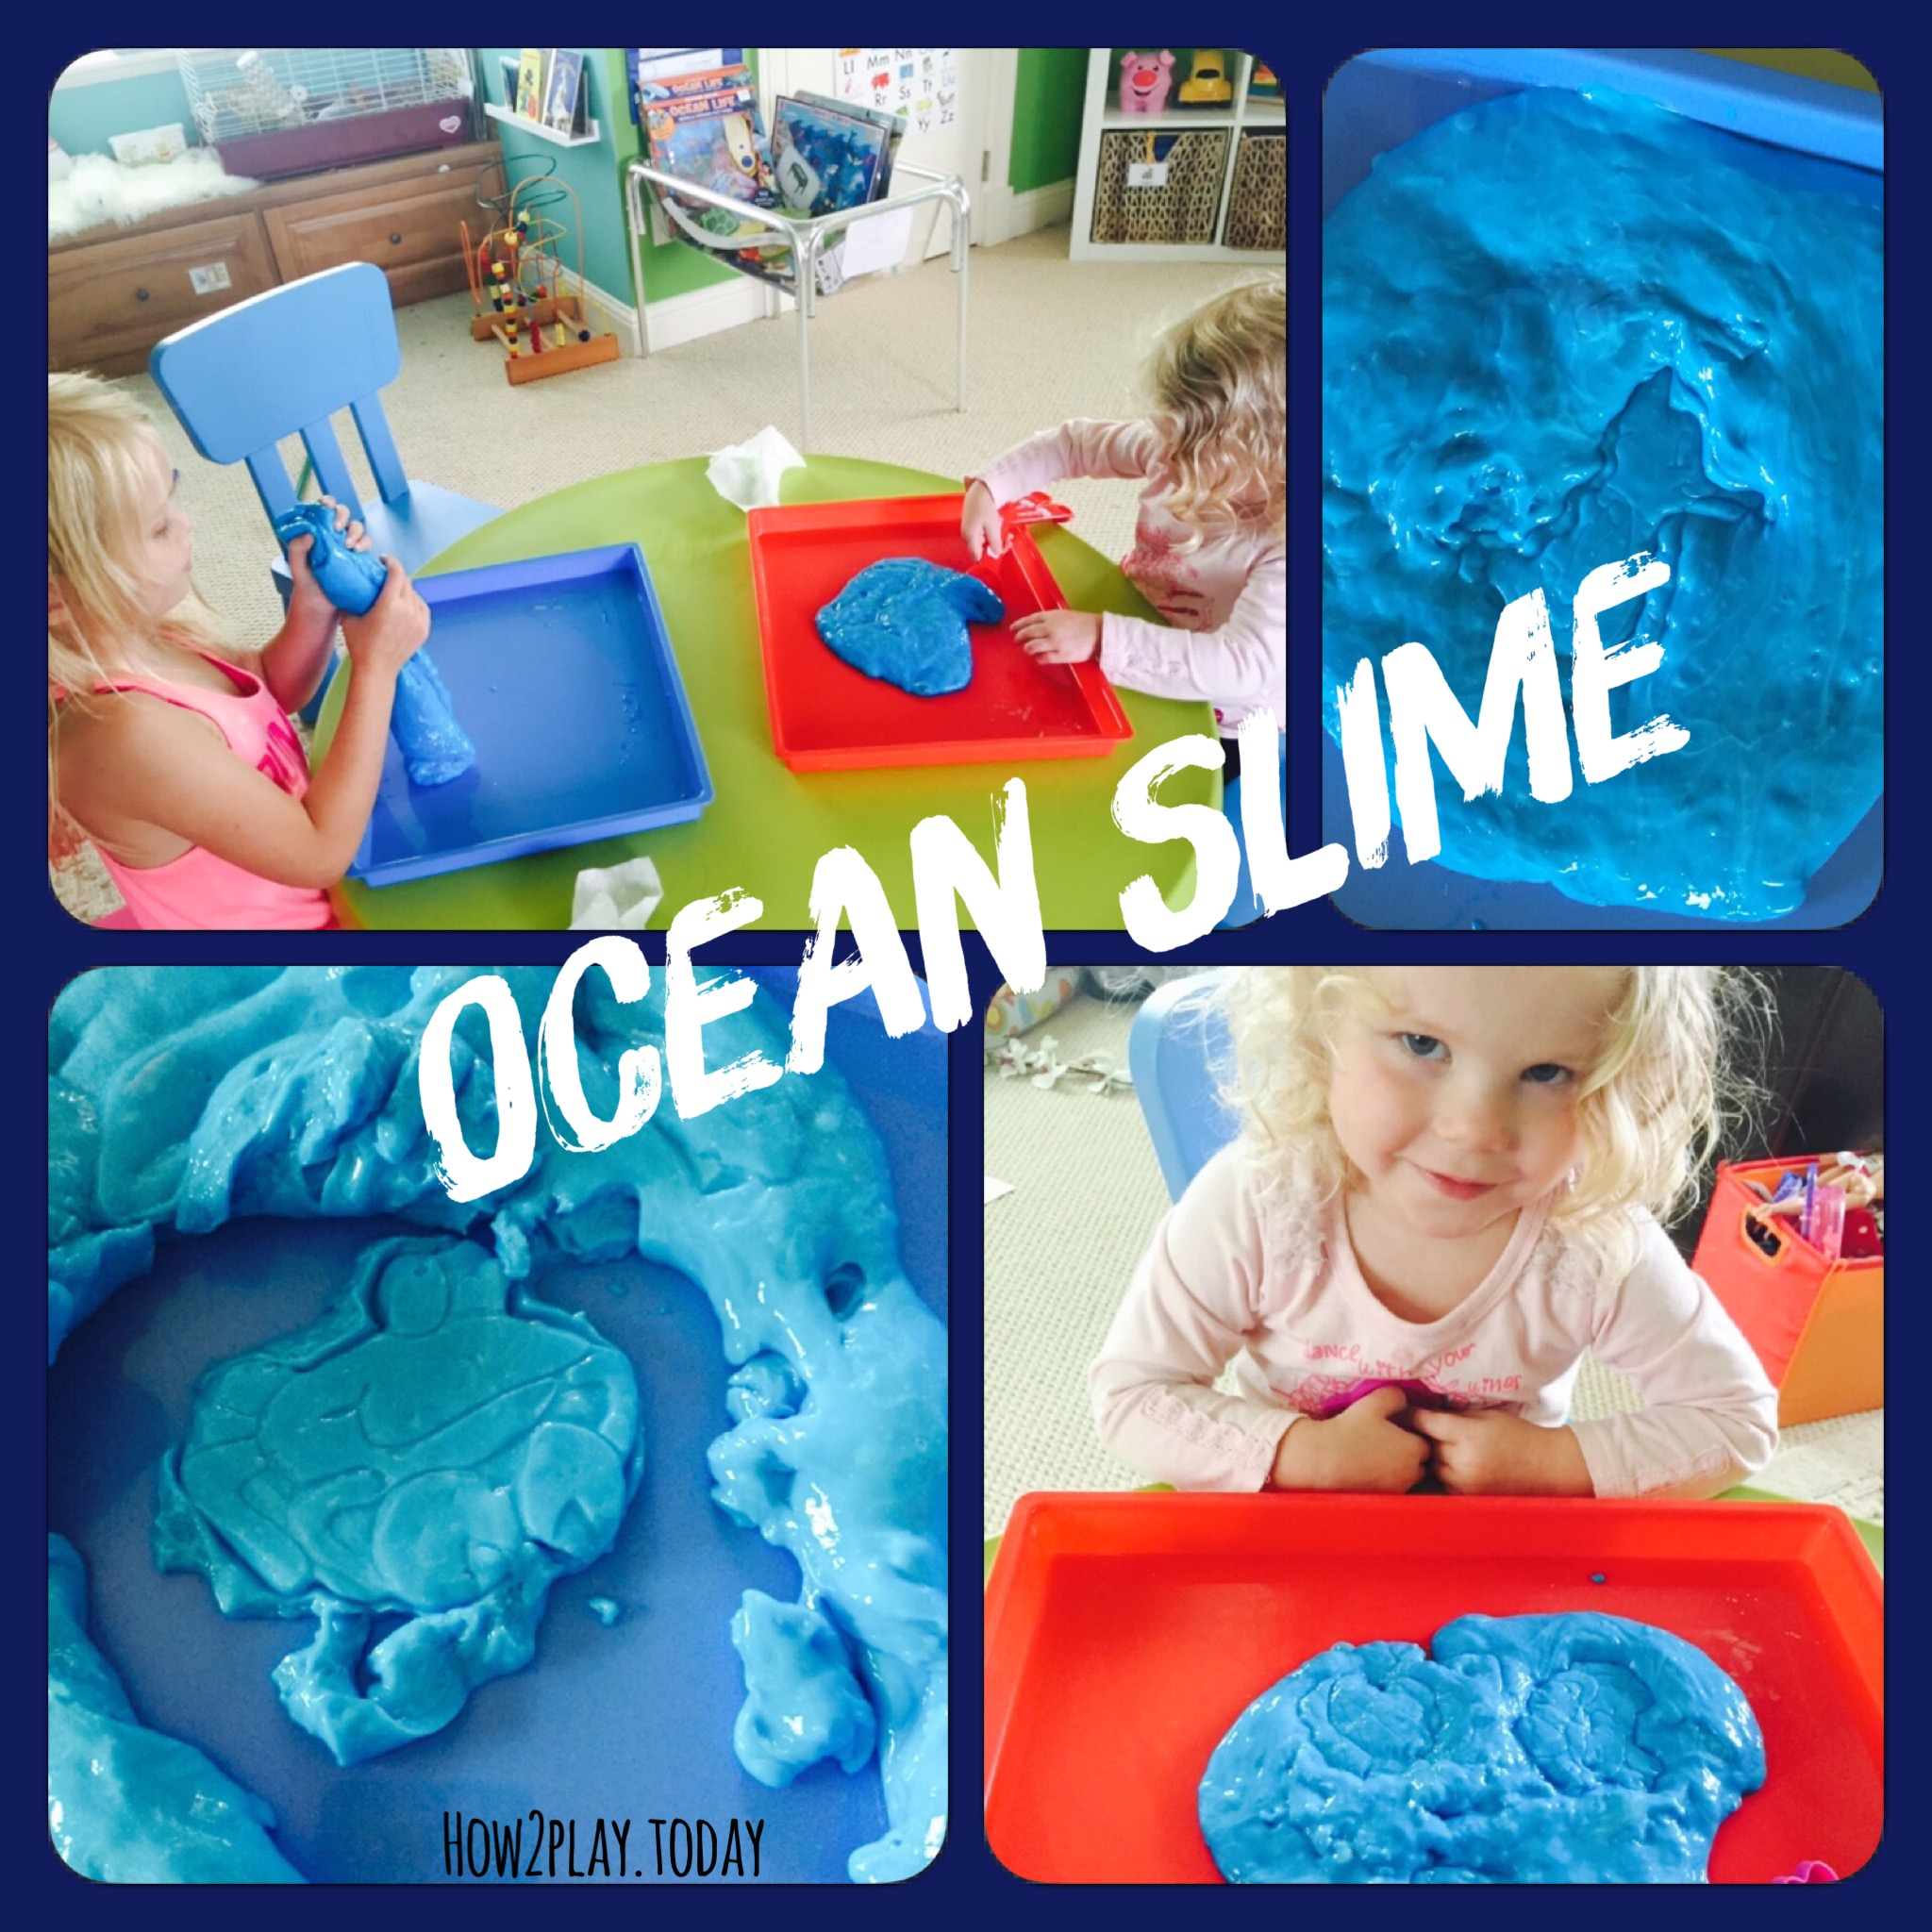 Homemade ocean slime is great for sensory play. Add some seashells or plastic fish and you're all set.